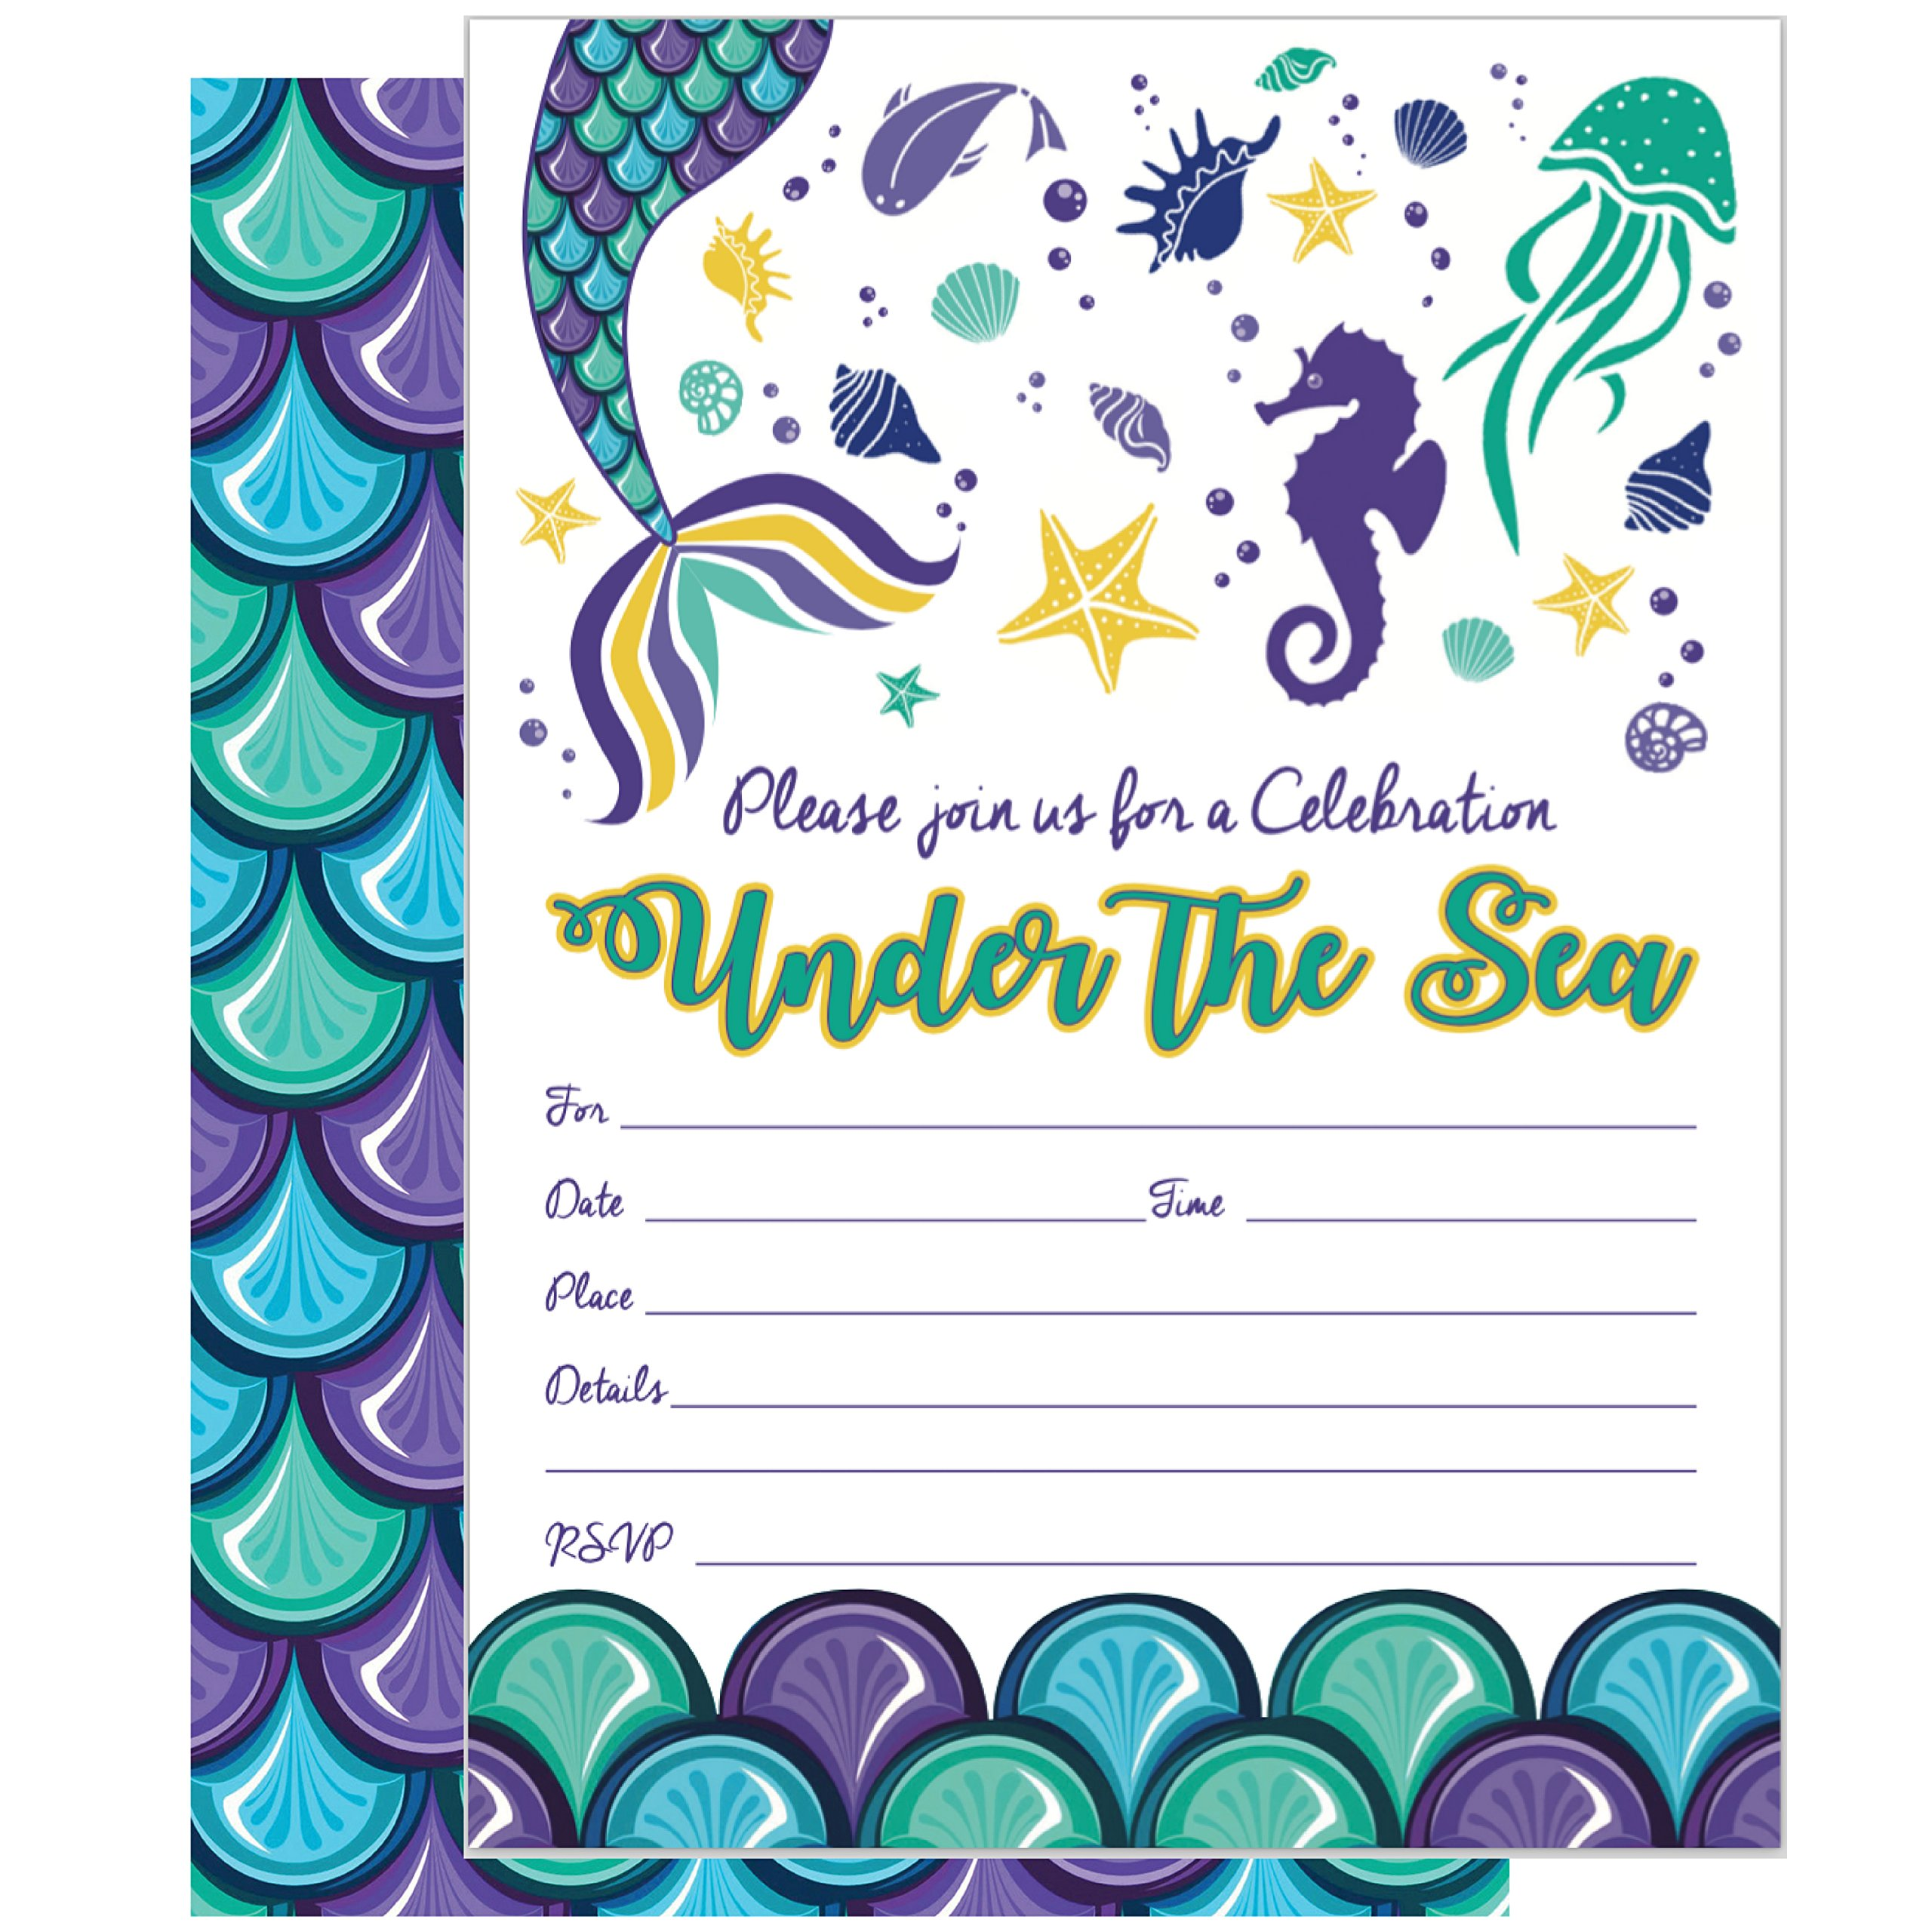 Mermaid Party Invitations for Kids: Pack of 25 Under the Sea Birthday Invites with Envelopes | Tell Everyone about Your Girls or Boys Magical Party with these Invitation Postcards